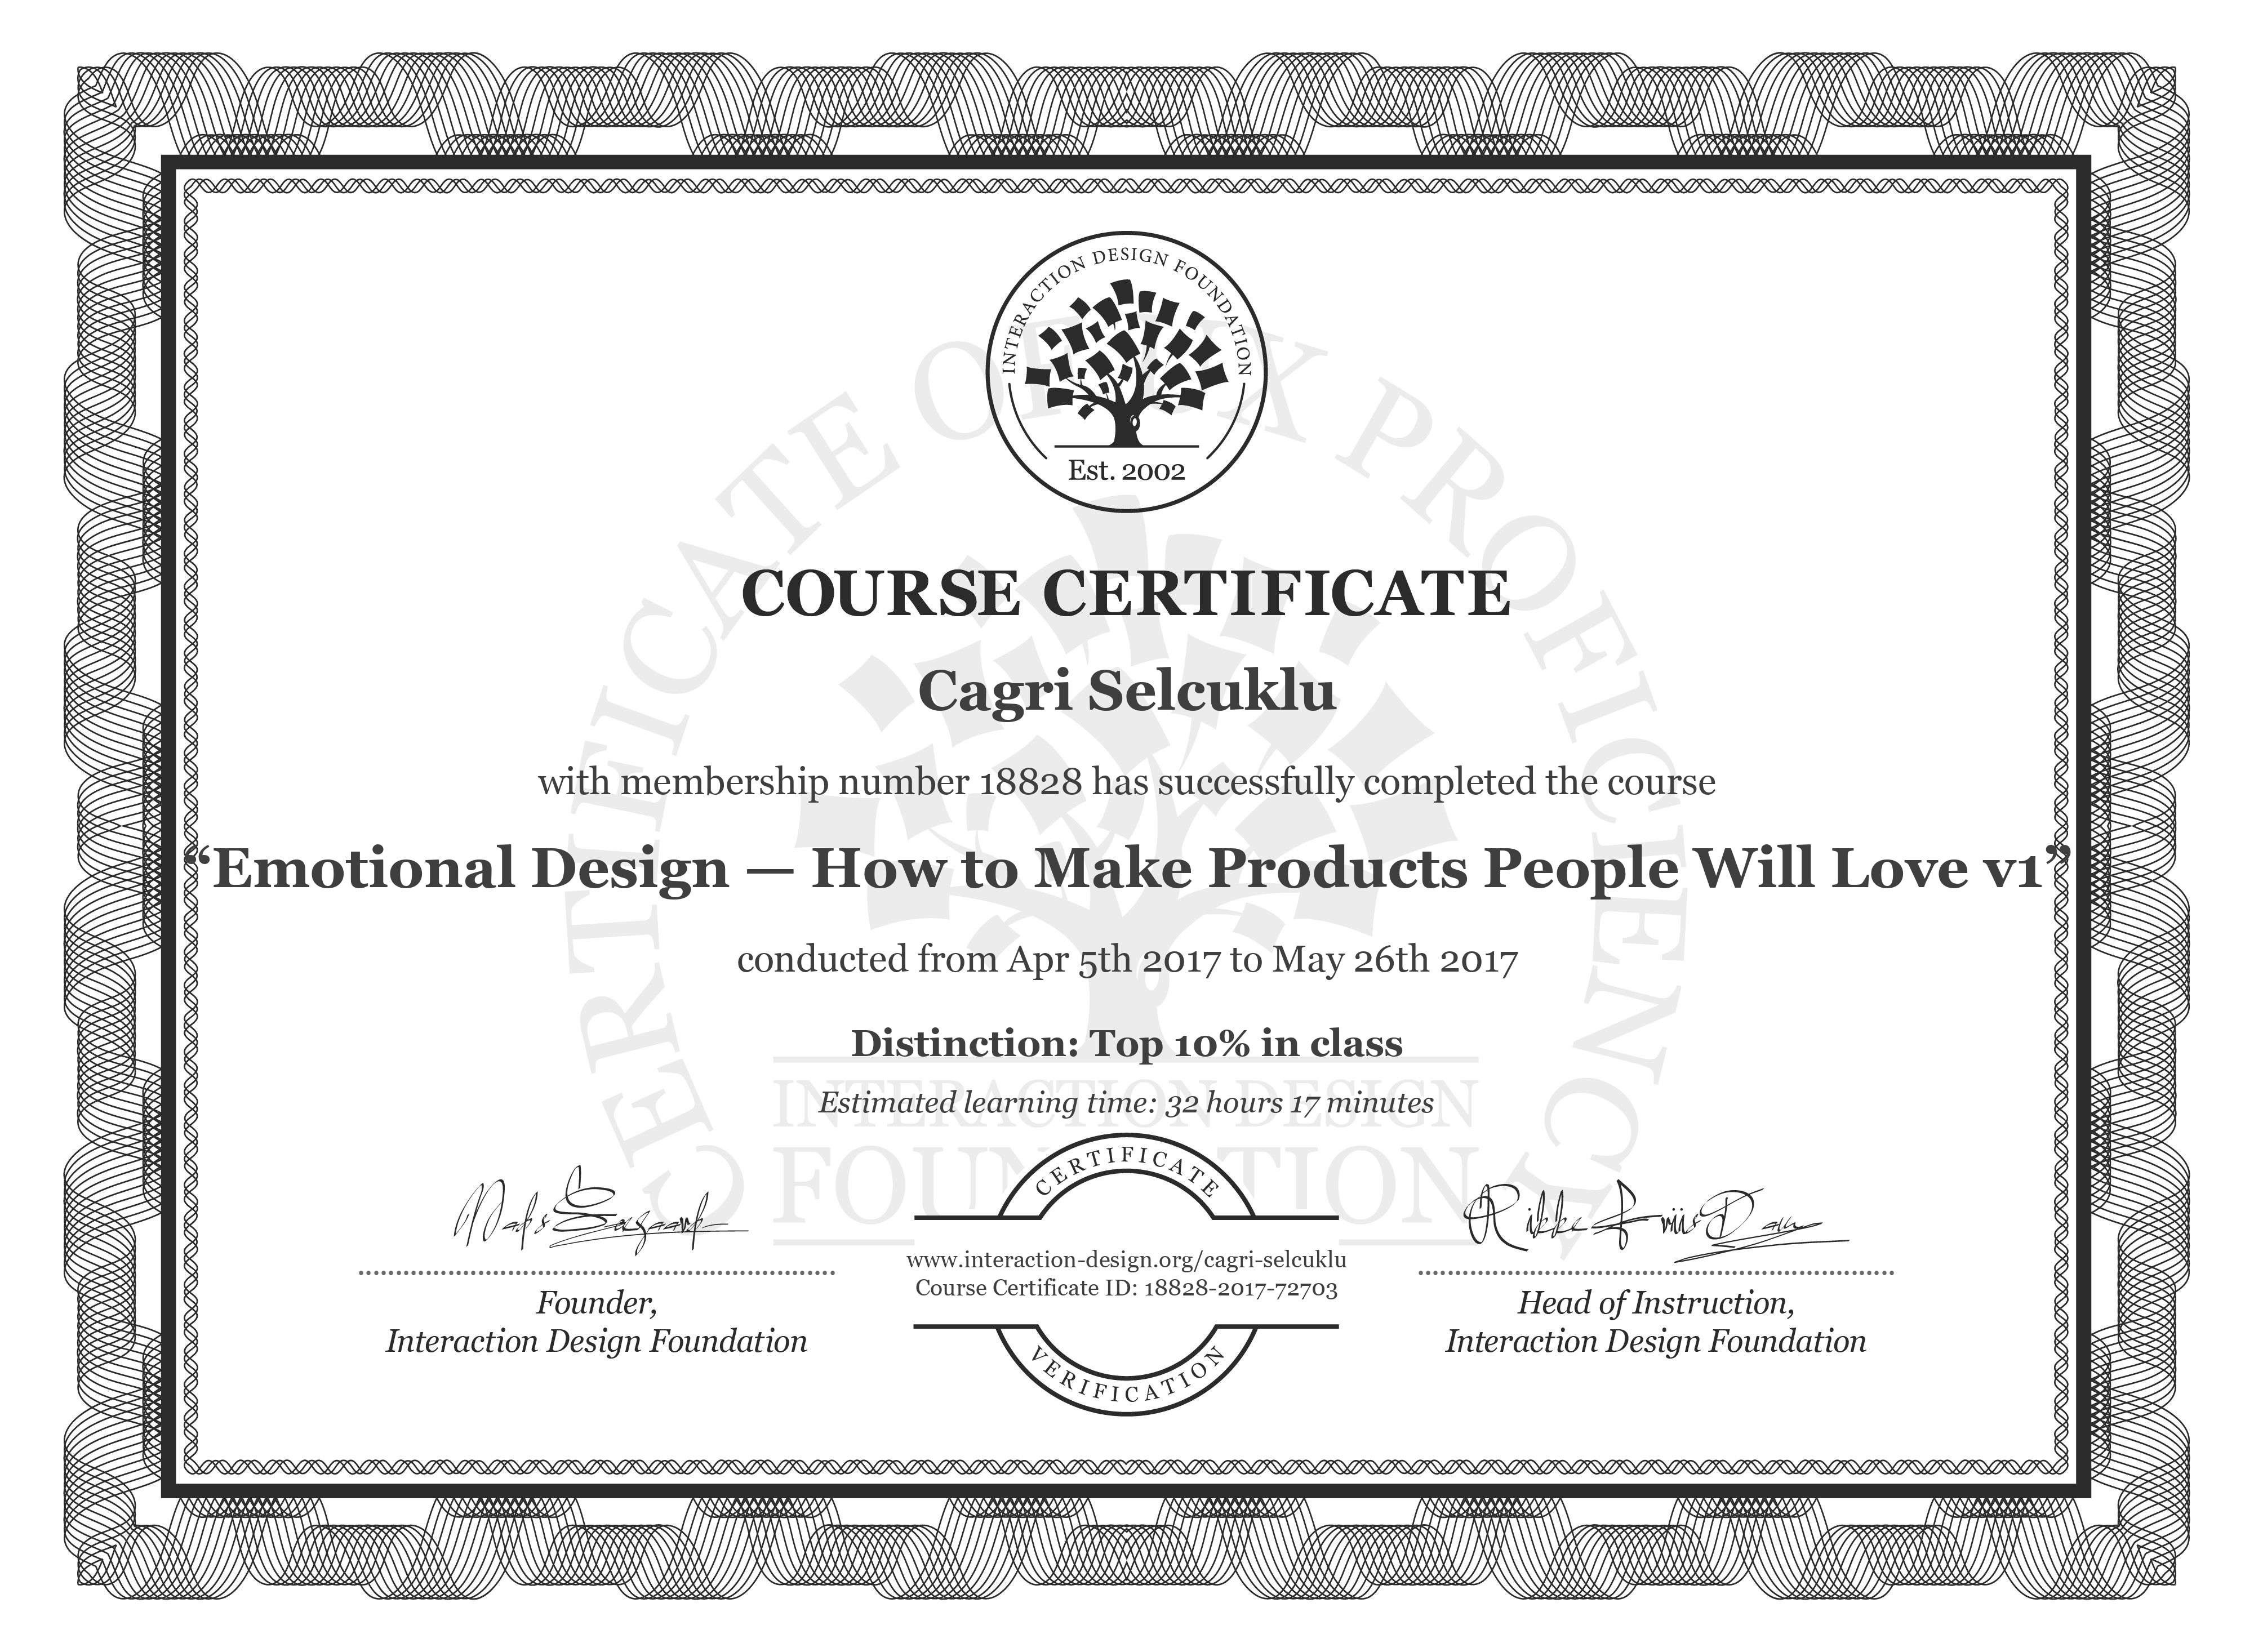 Cagri Selcuklu's Course Certificate: Emotional Design: How to Make Products People Will Love